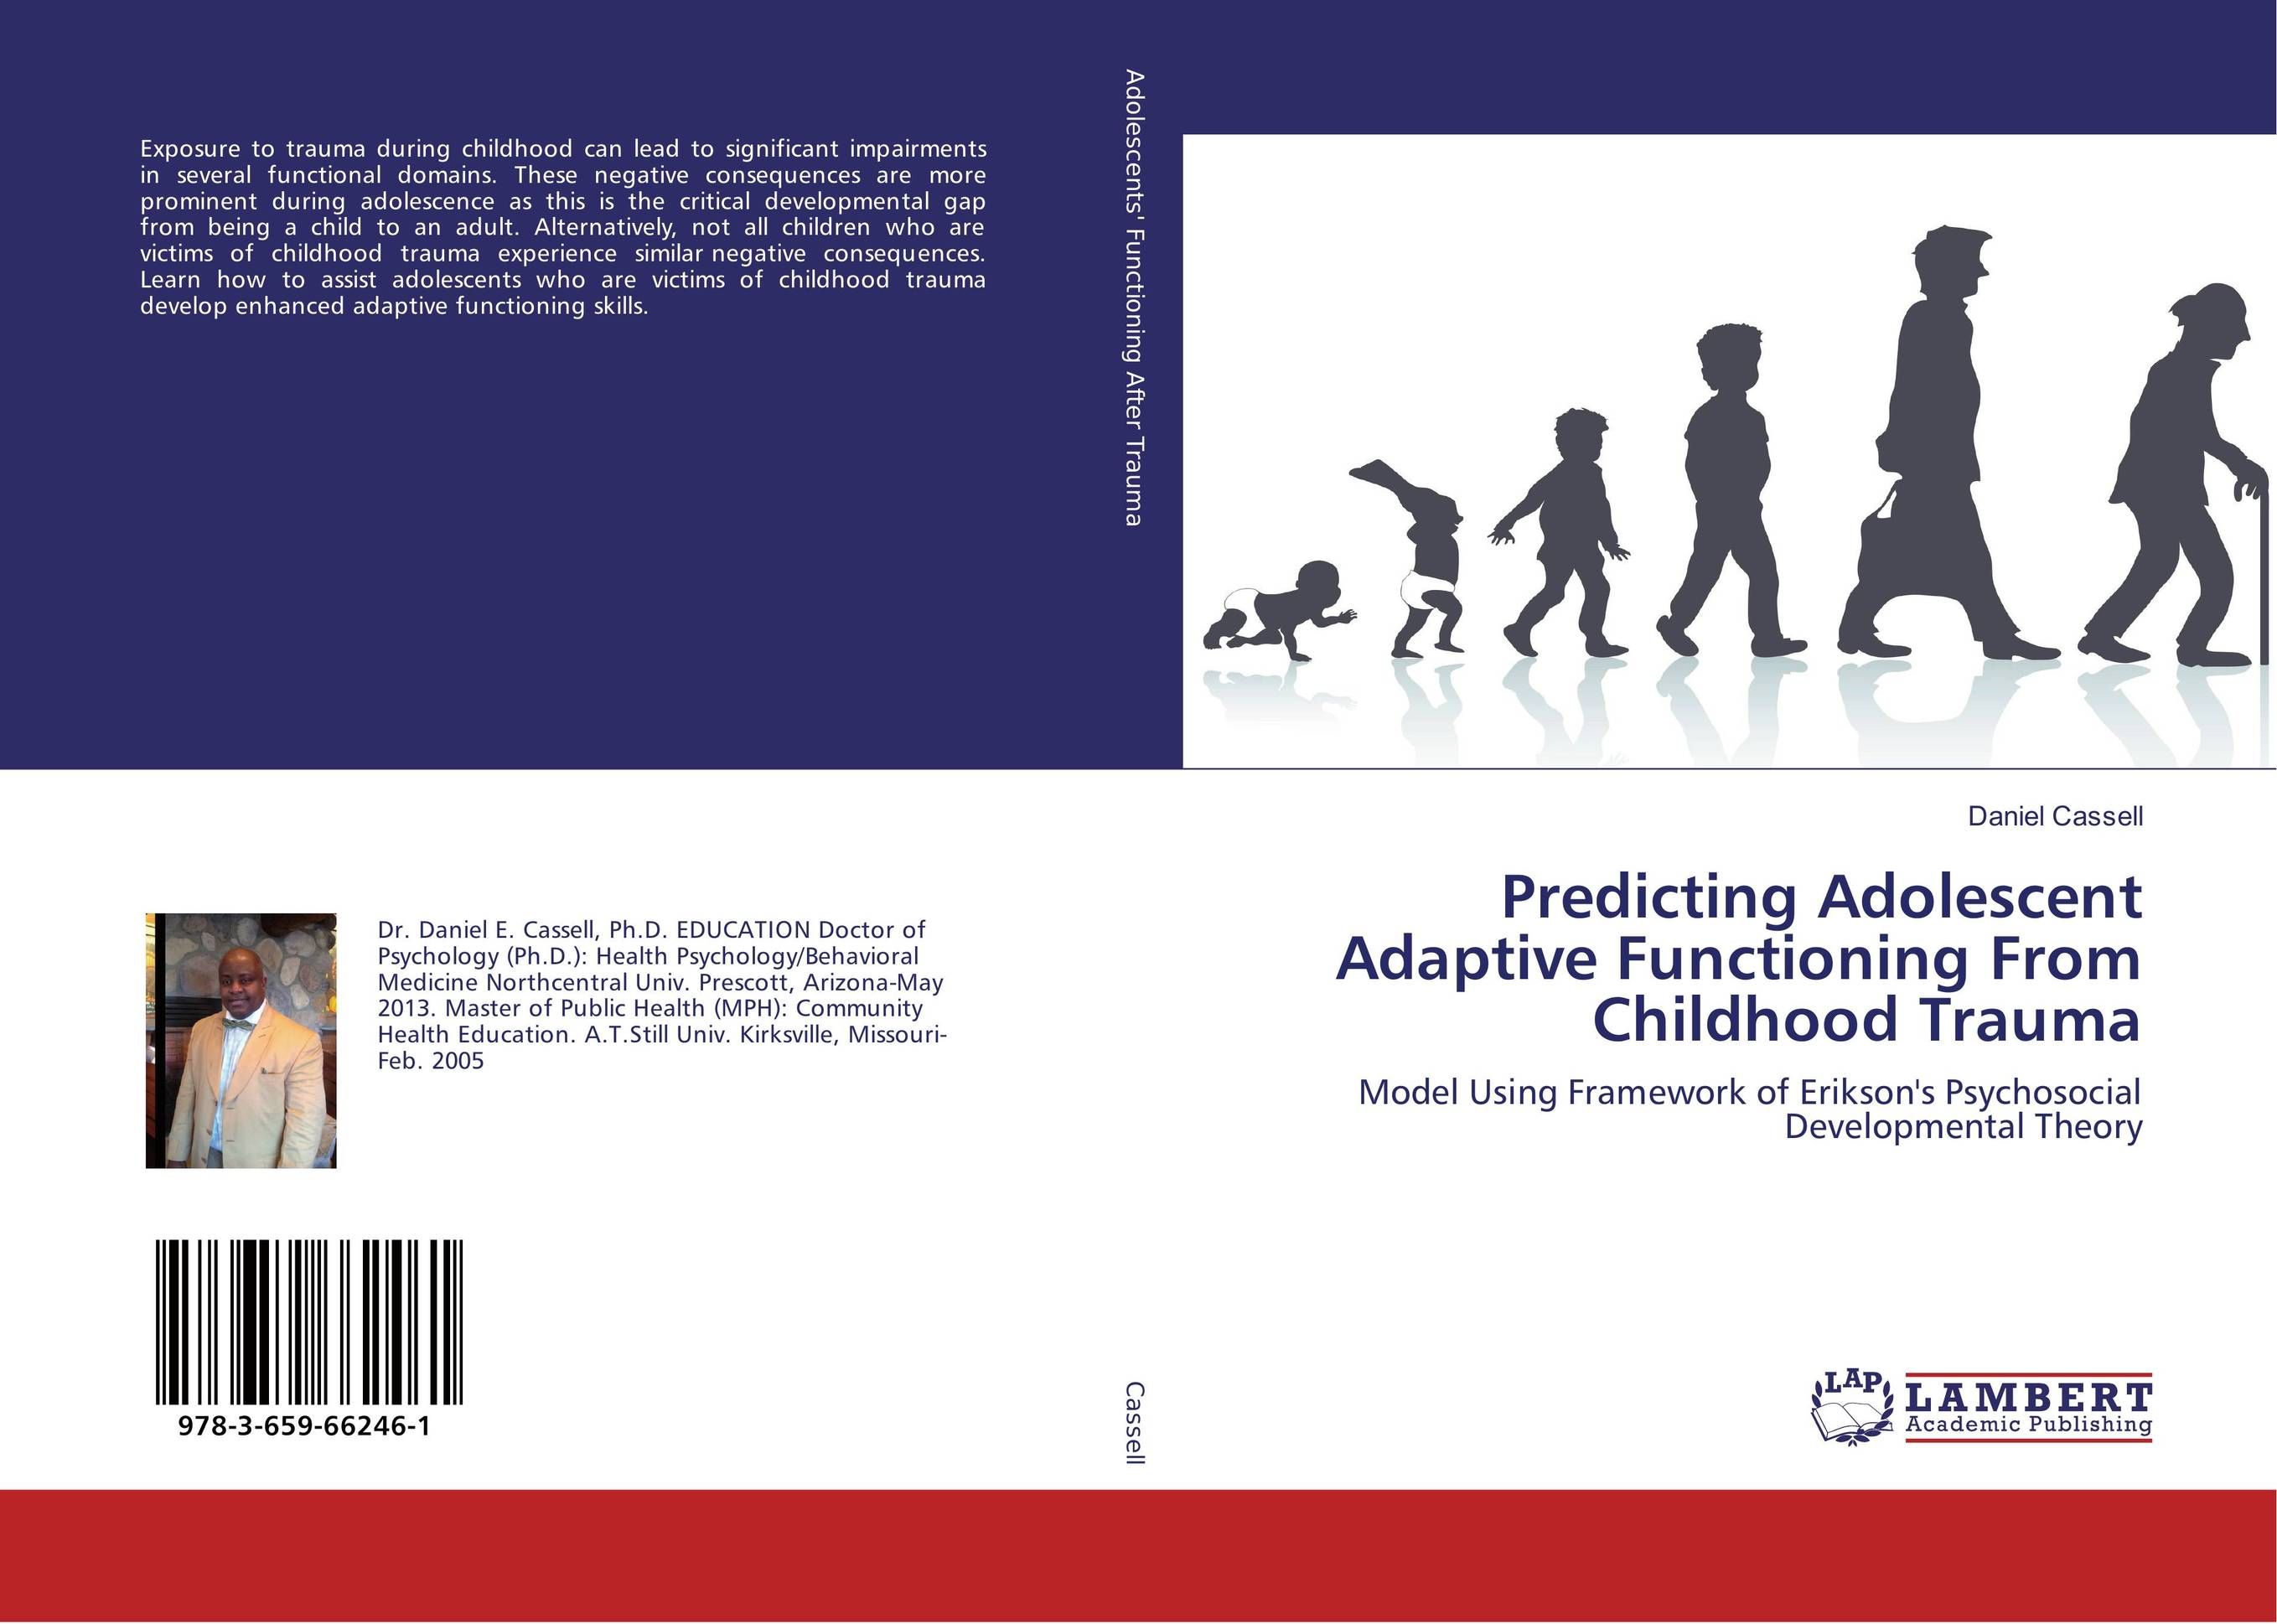 Predicting Adolescent Adaptive Functioning From Childhood Trauma